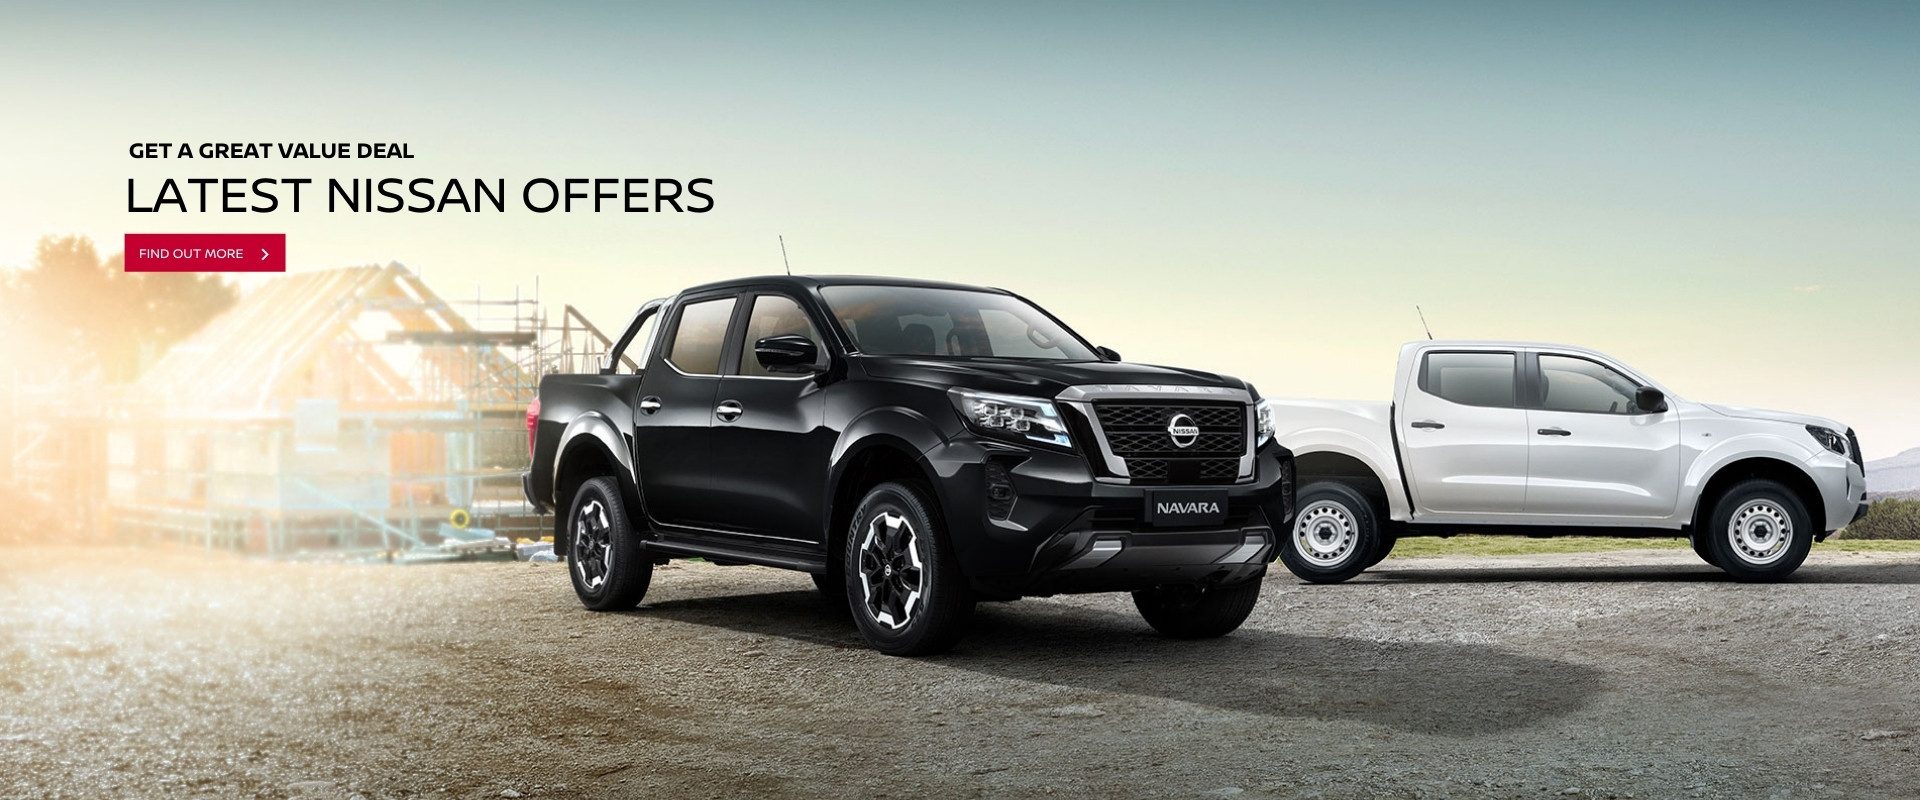 Nissan Offers